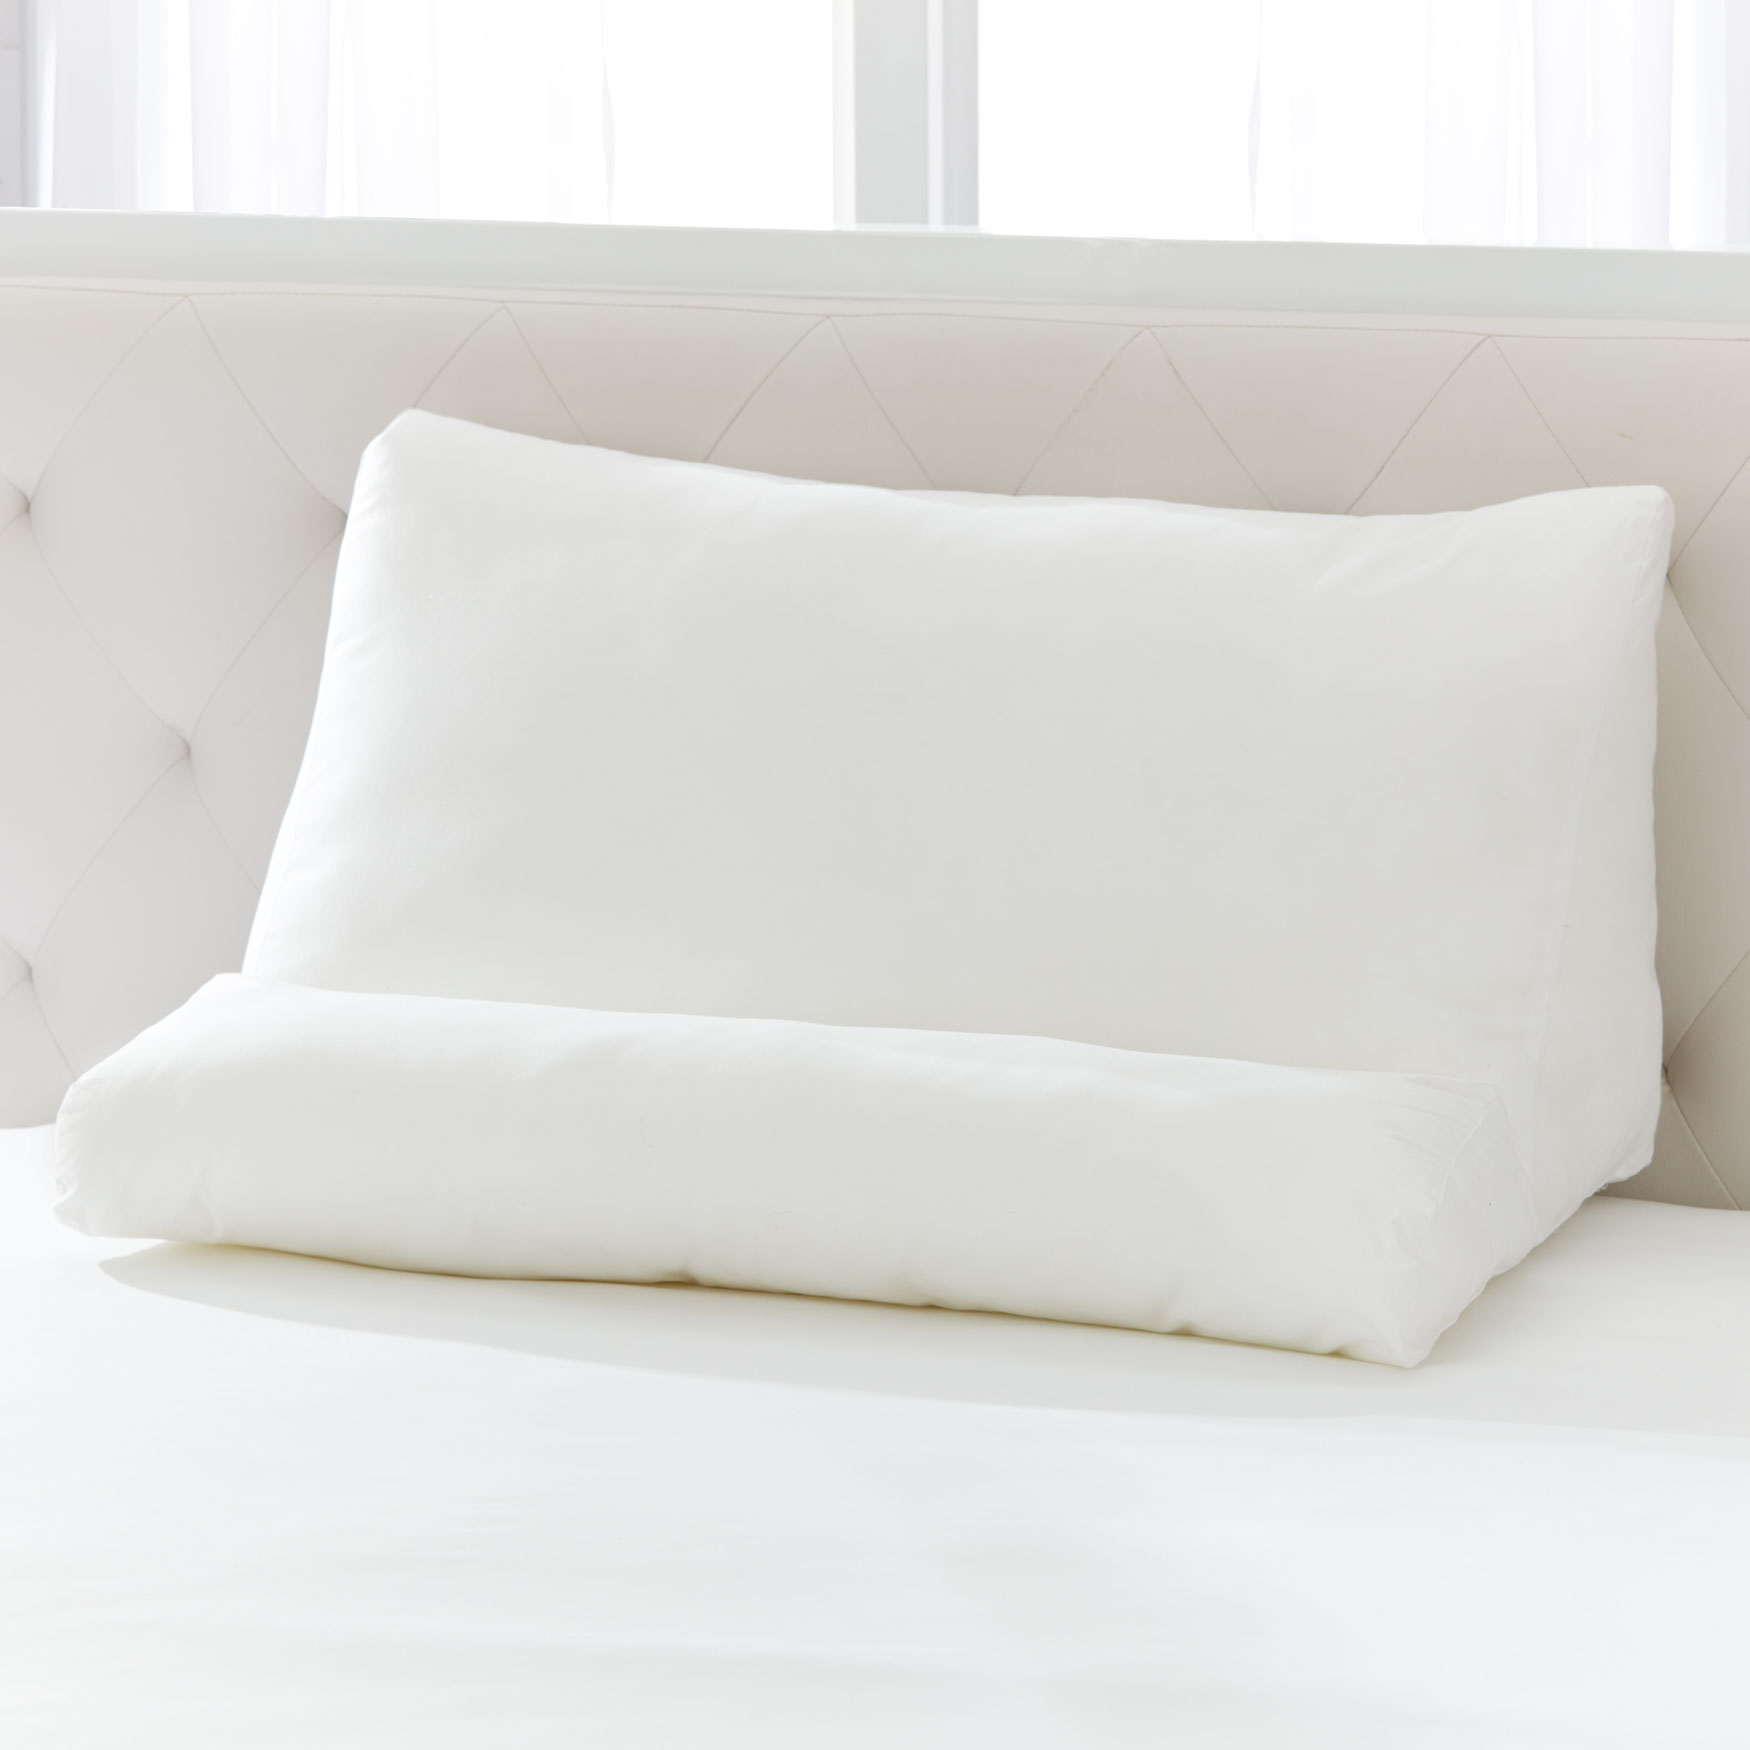 XL Flip Pillow, WHITE